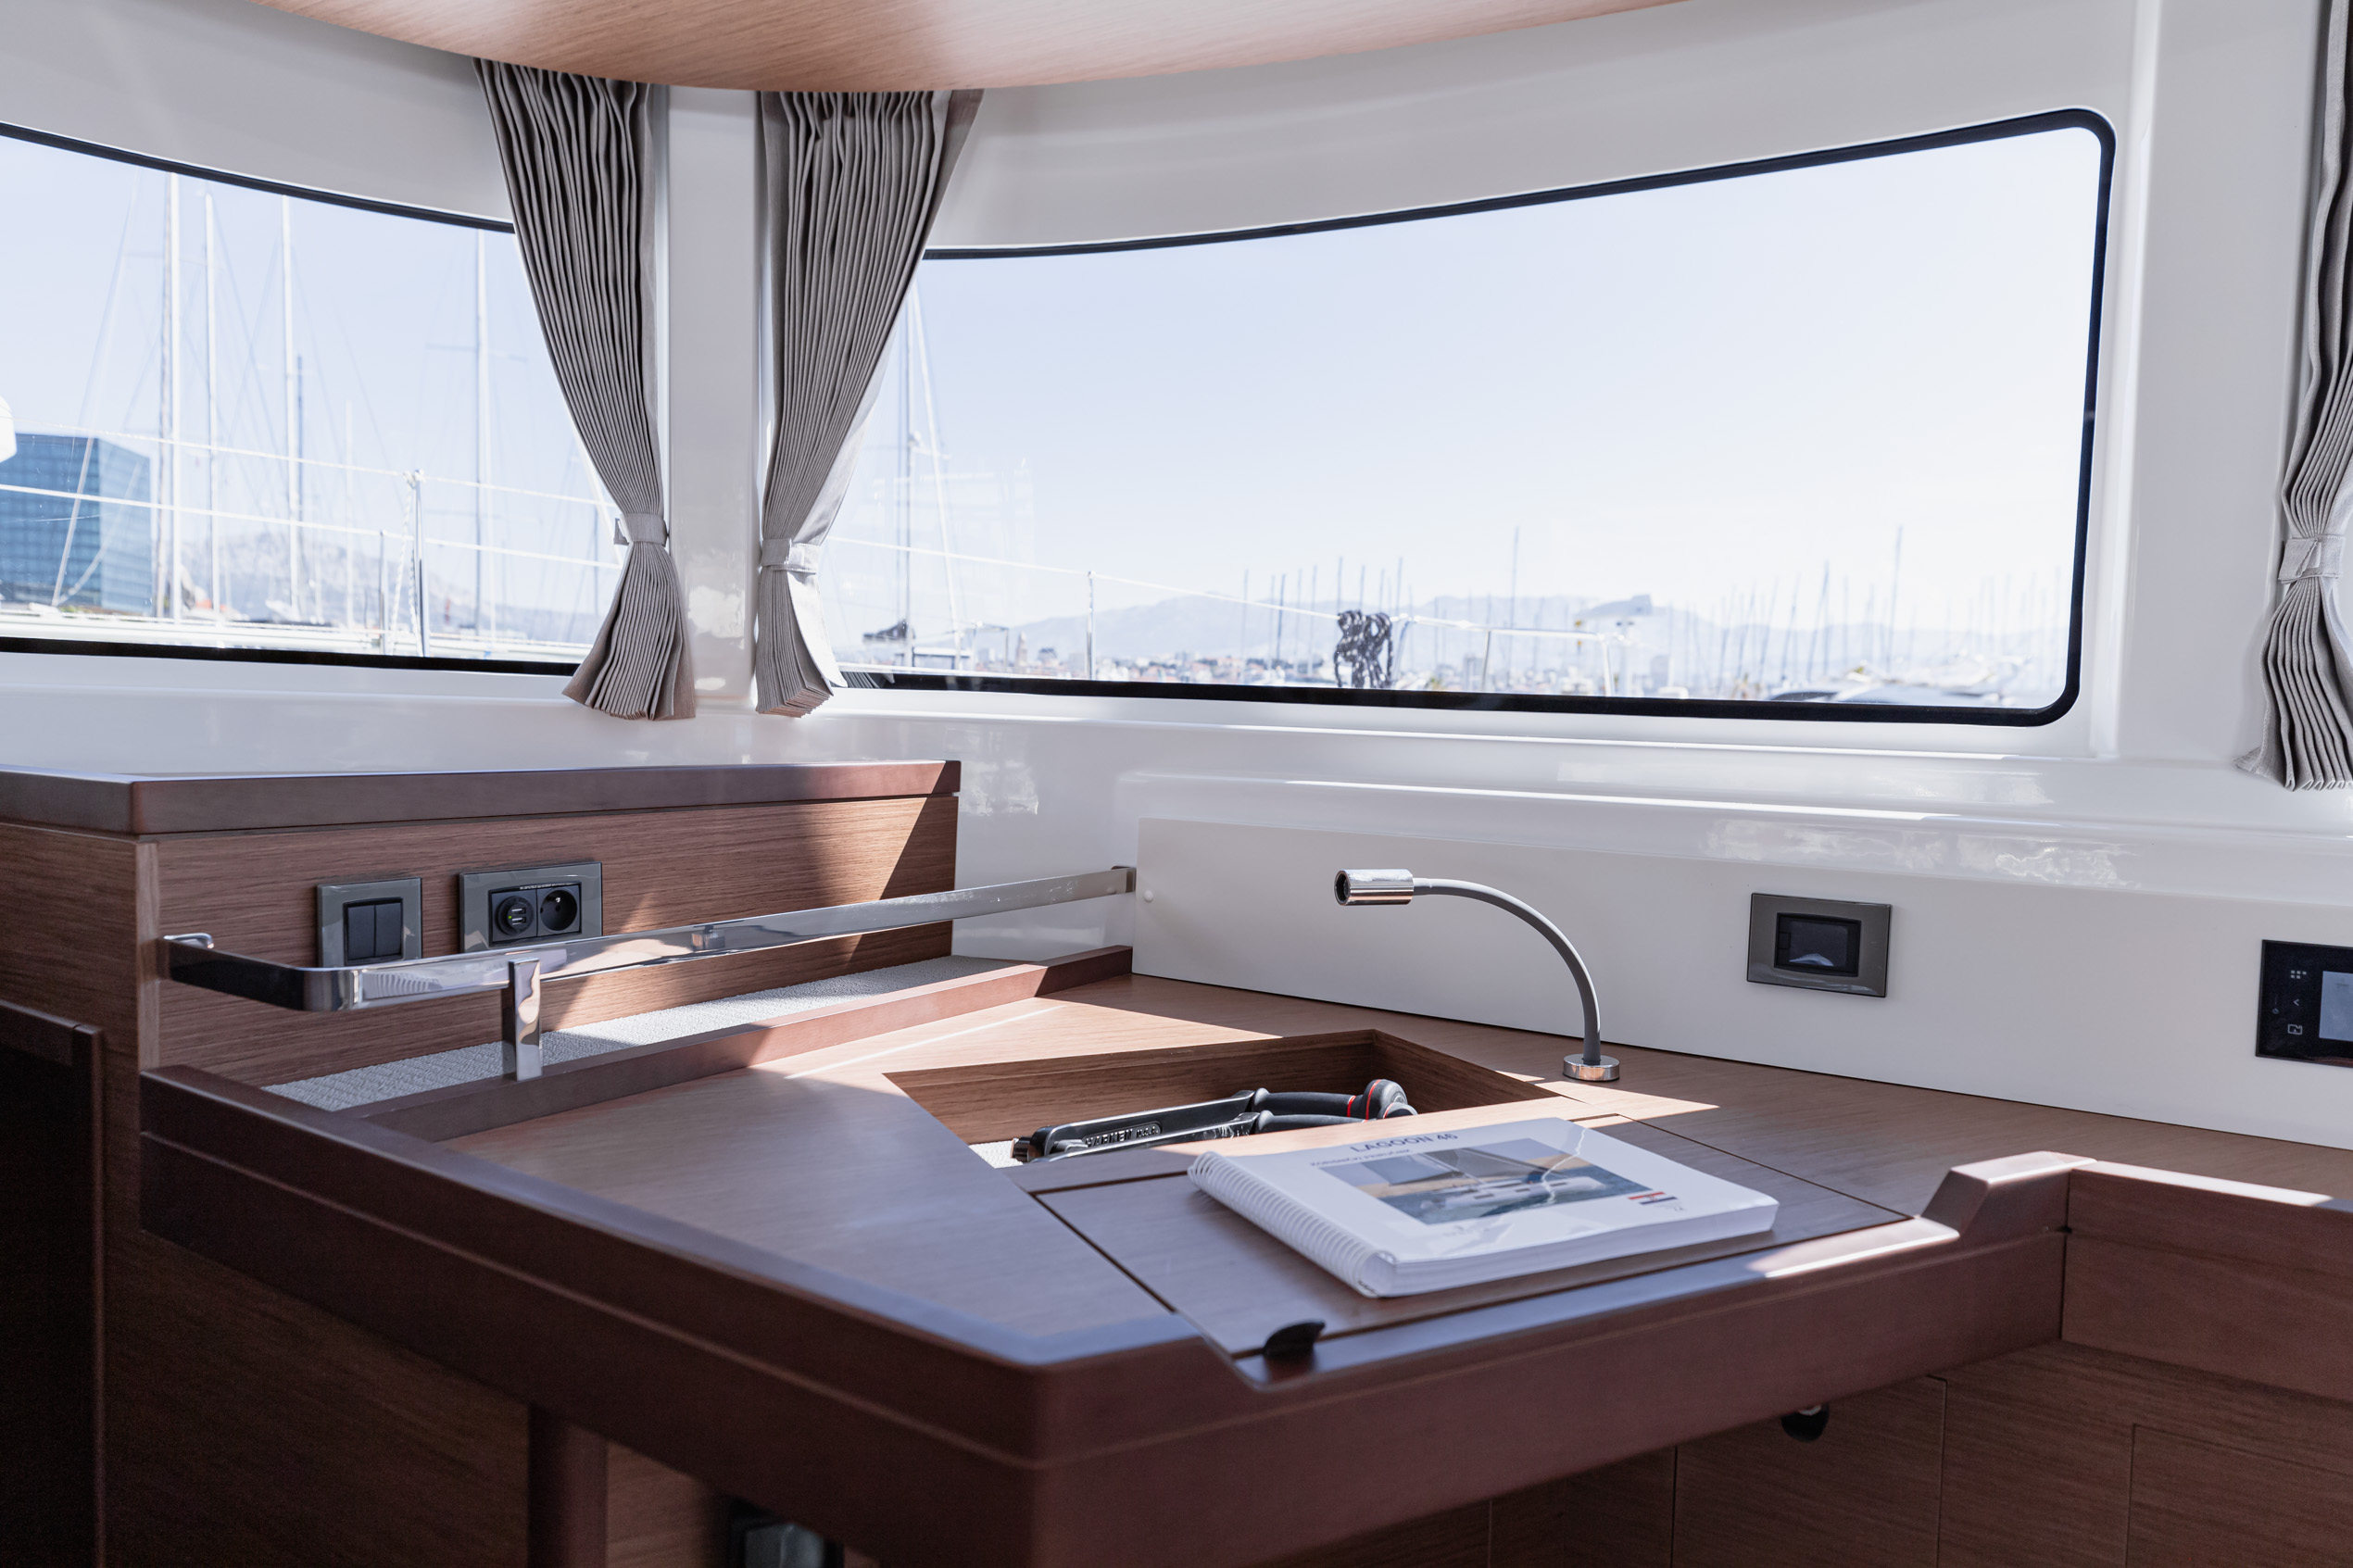 Lagoon 46 (2020) equipped with generator, A/C (sal (HANGOVER)  - 19